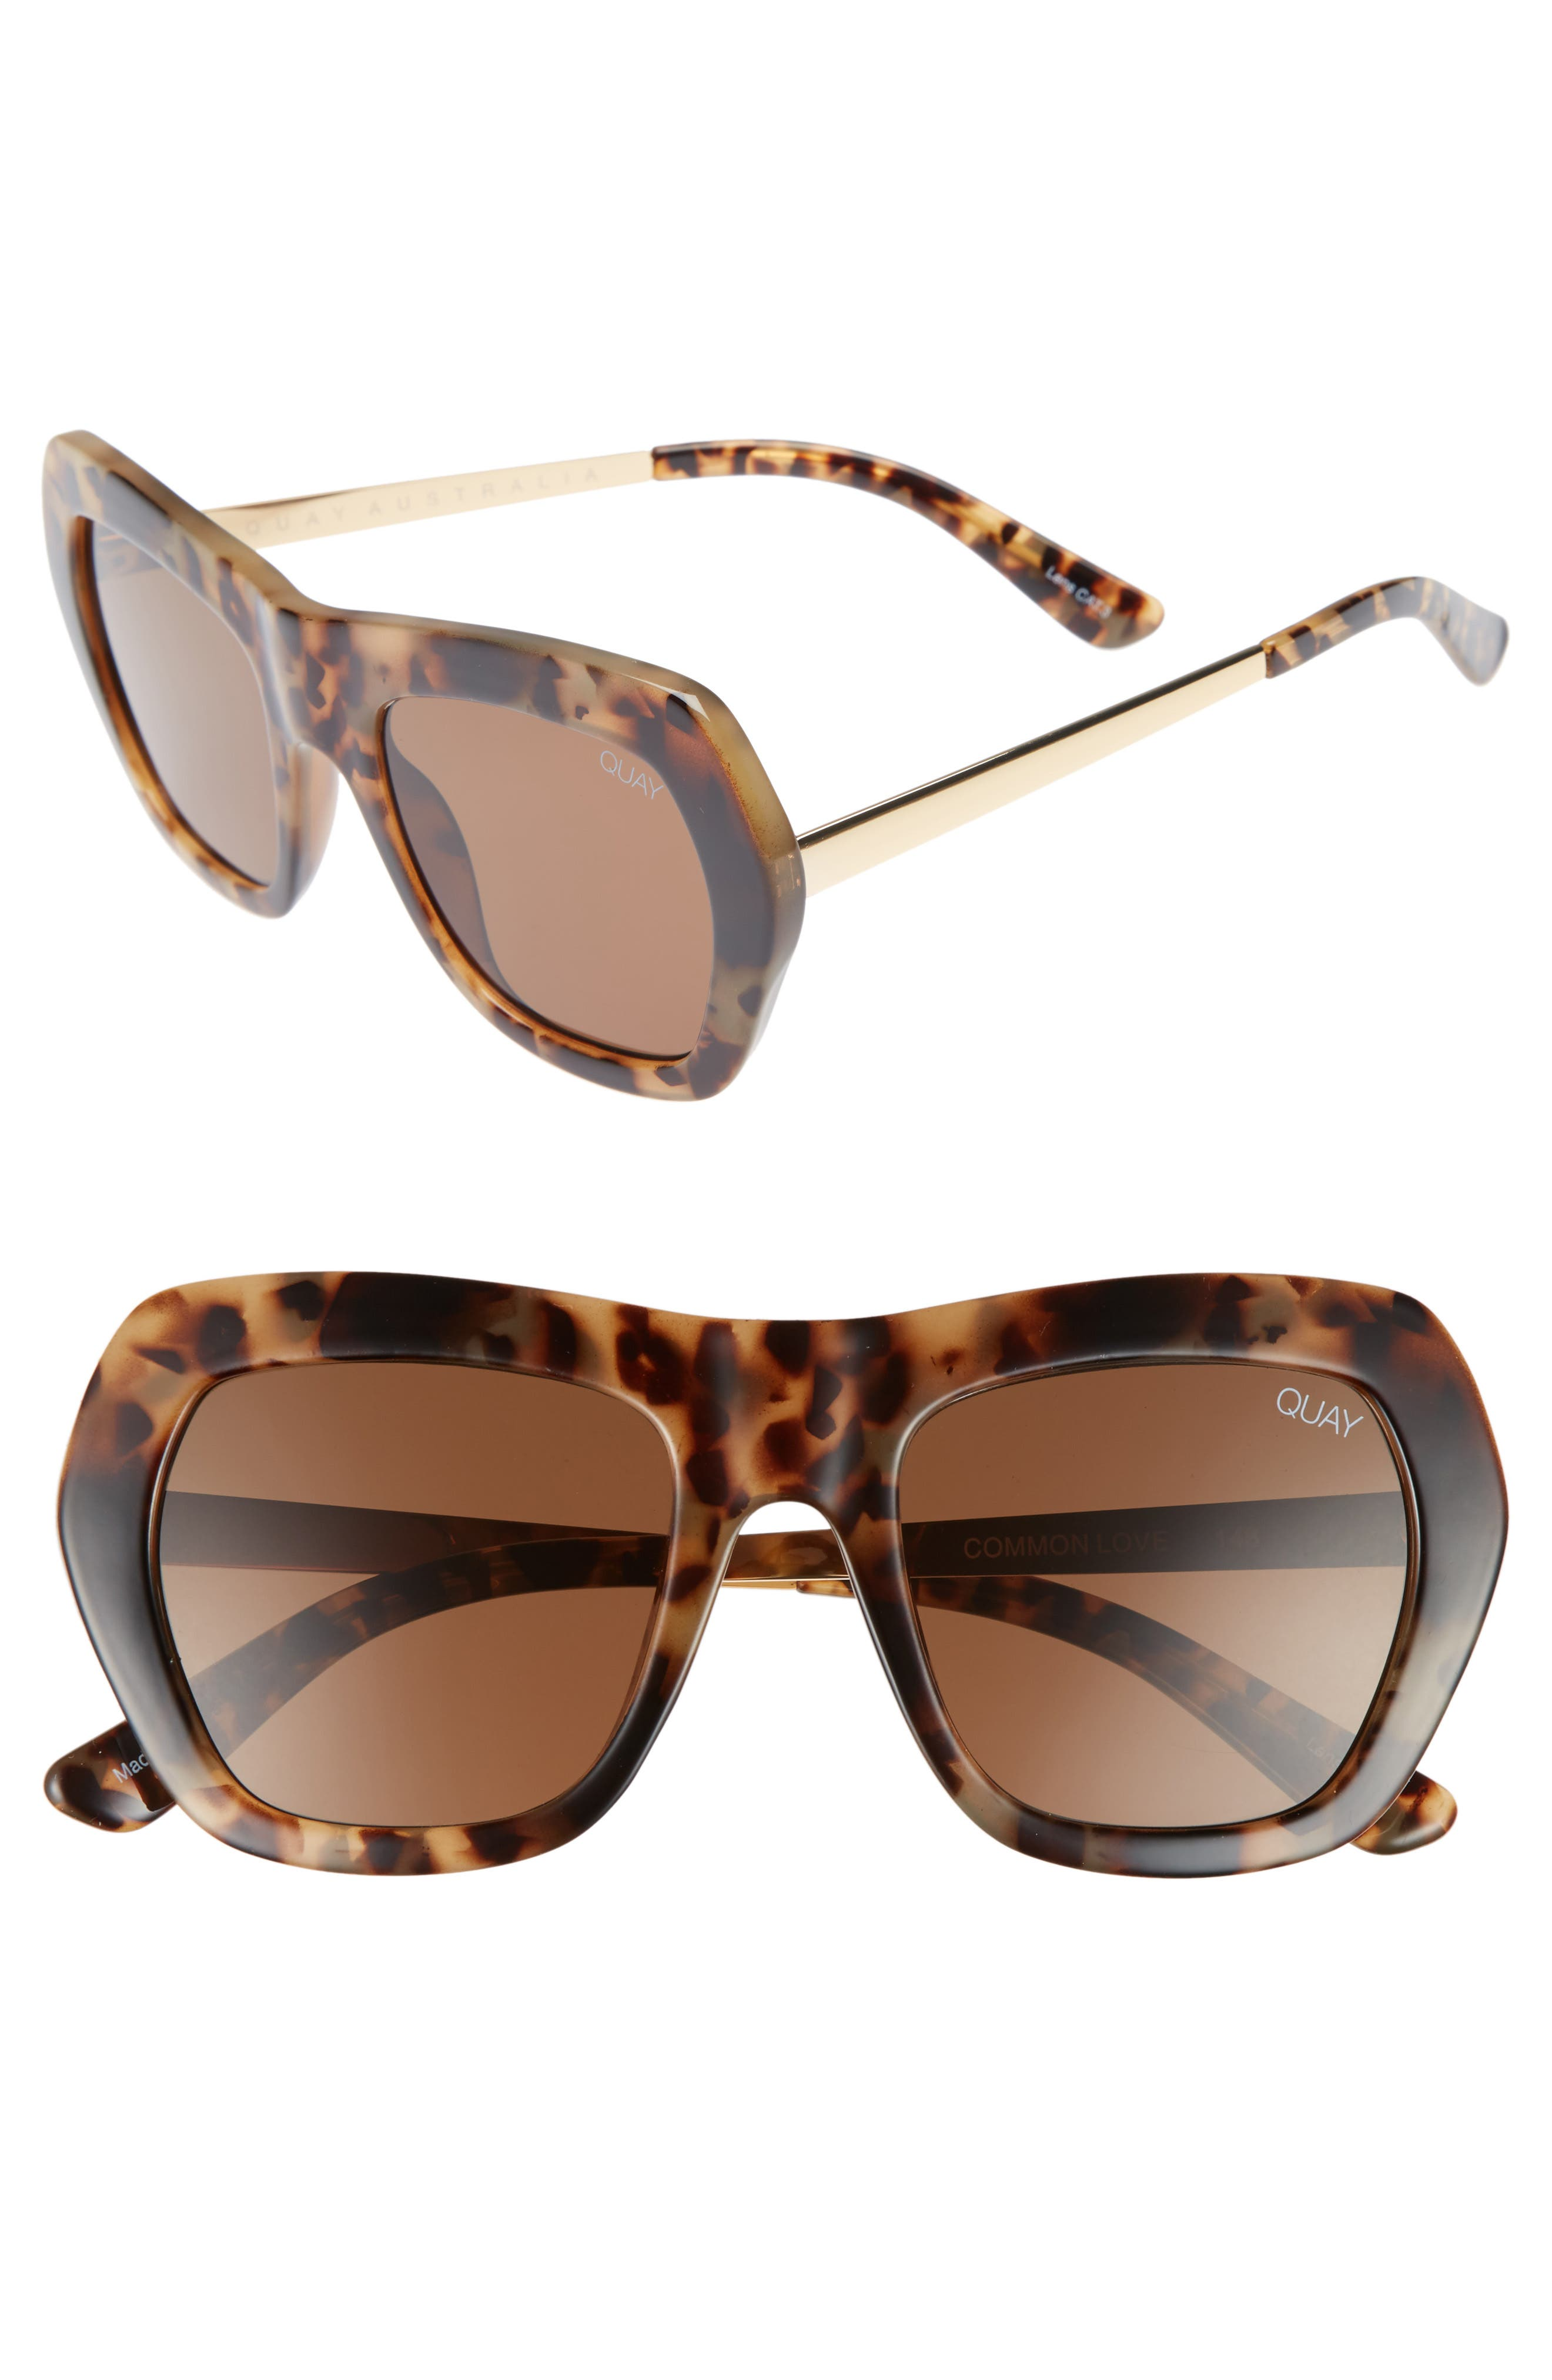 Common Love 53mm Square Sunglasses,                             Main thumbnail 1, color,                             Tort/ Brown